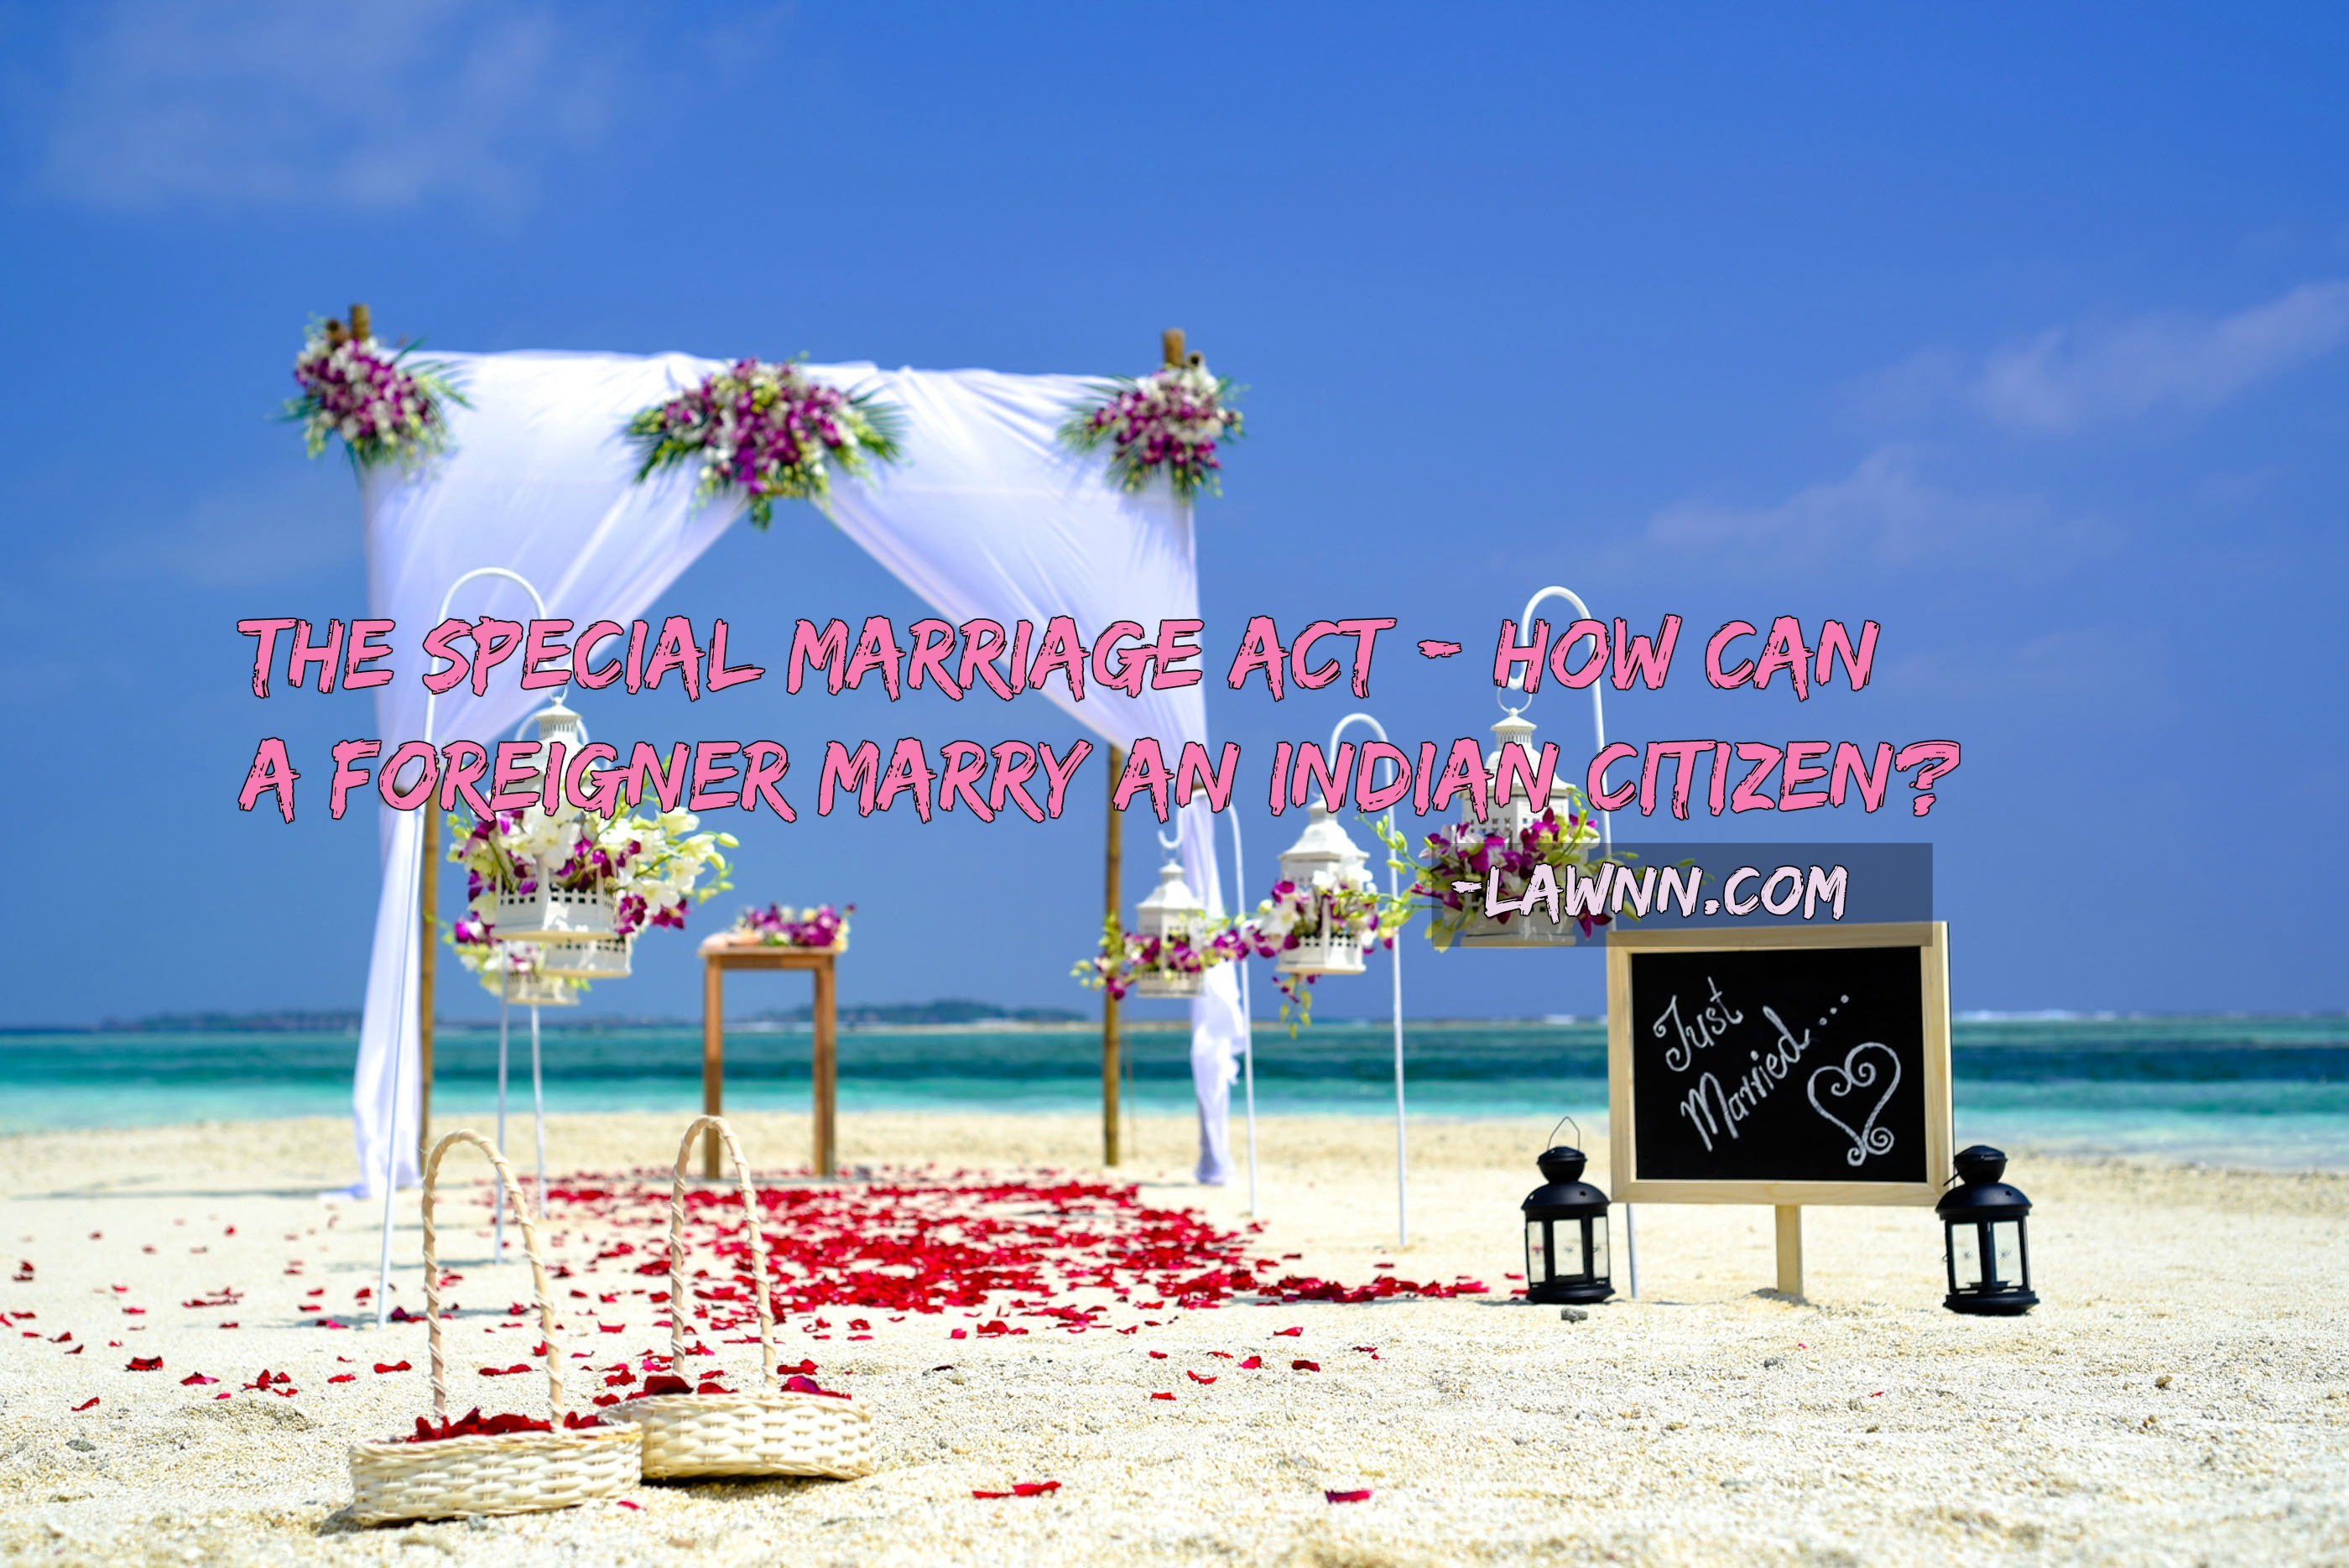 Where To Register For Wedding.The Special Marriage Act How Can A Foreigner Marry An